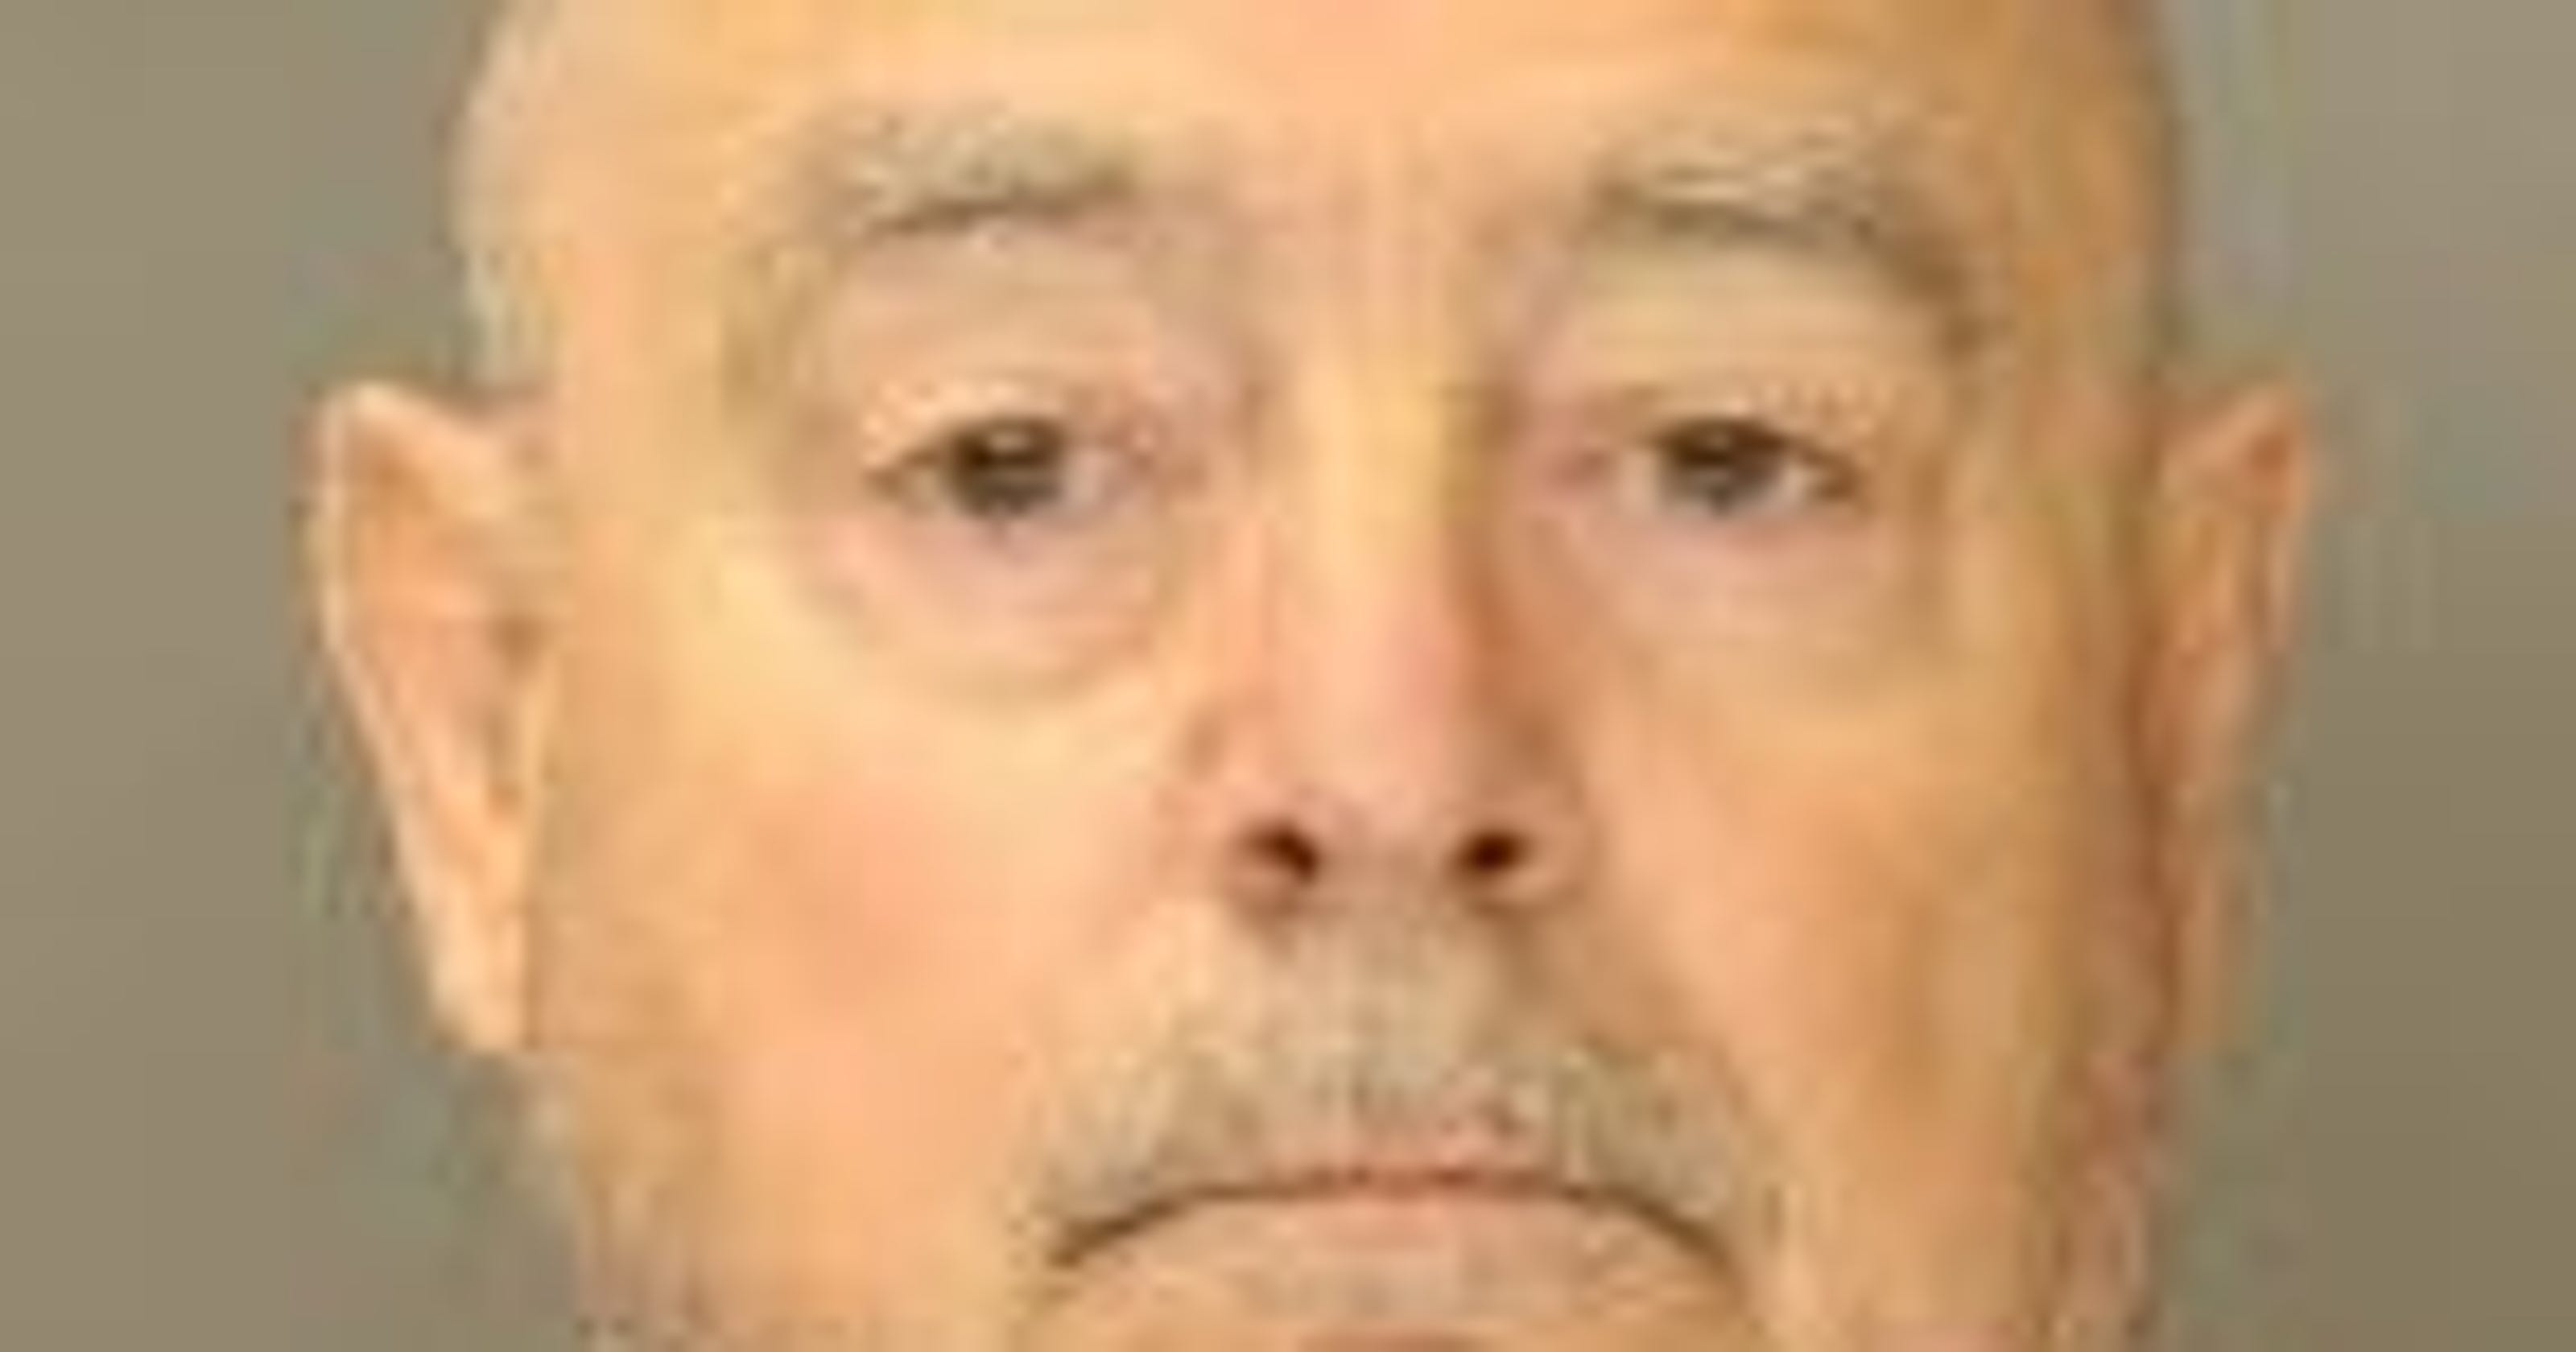 Franklin County DA: Ronald Harshman fairly tried for murder of